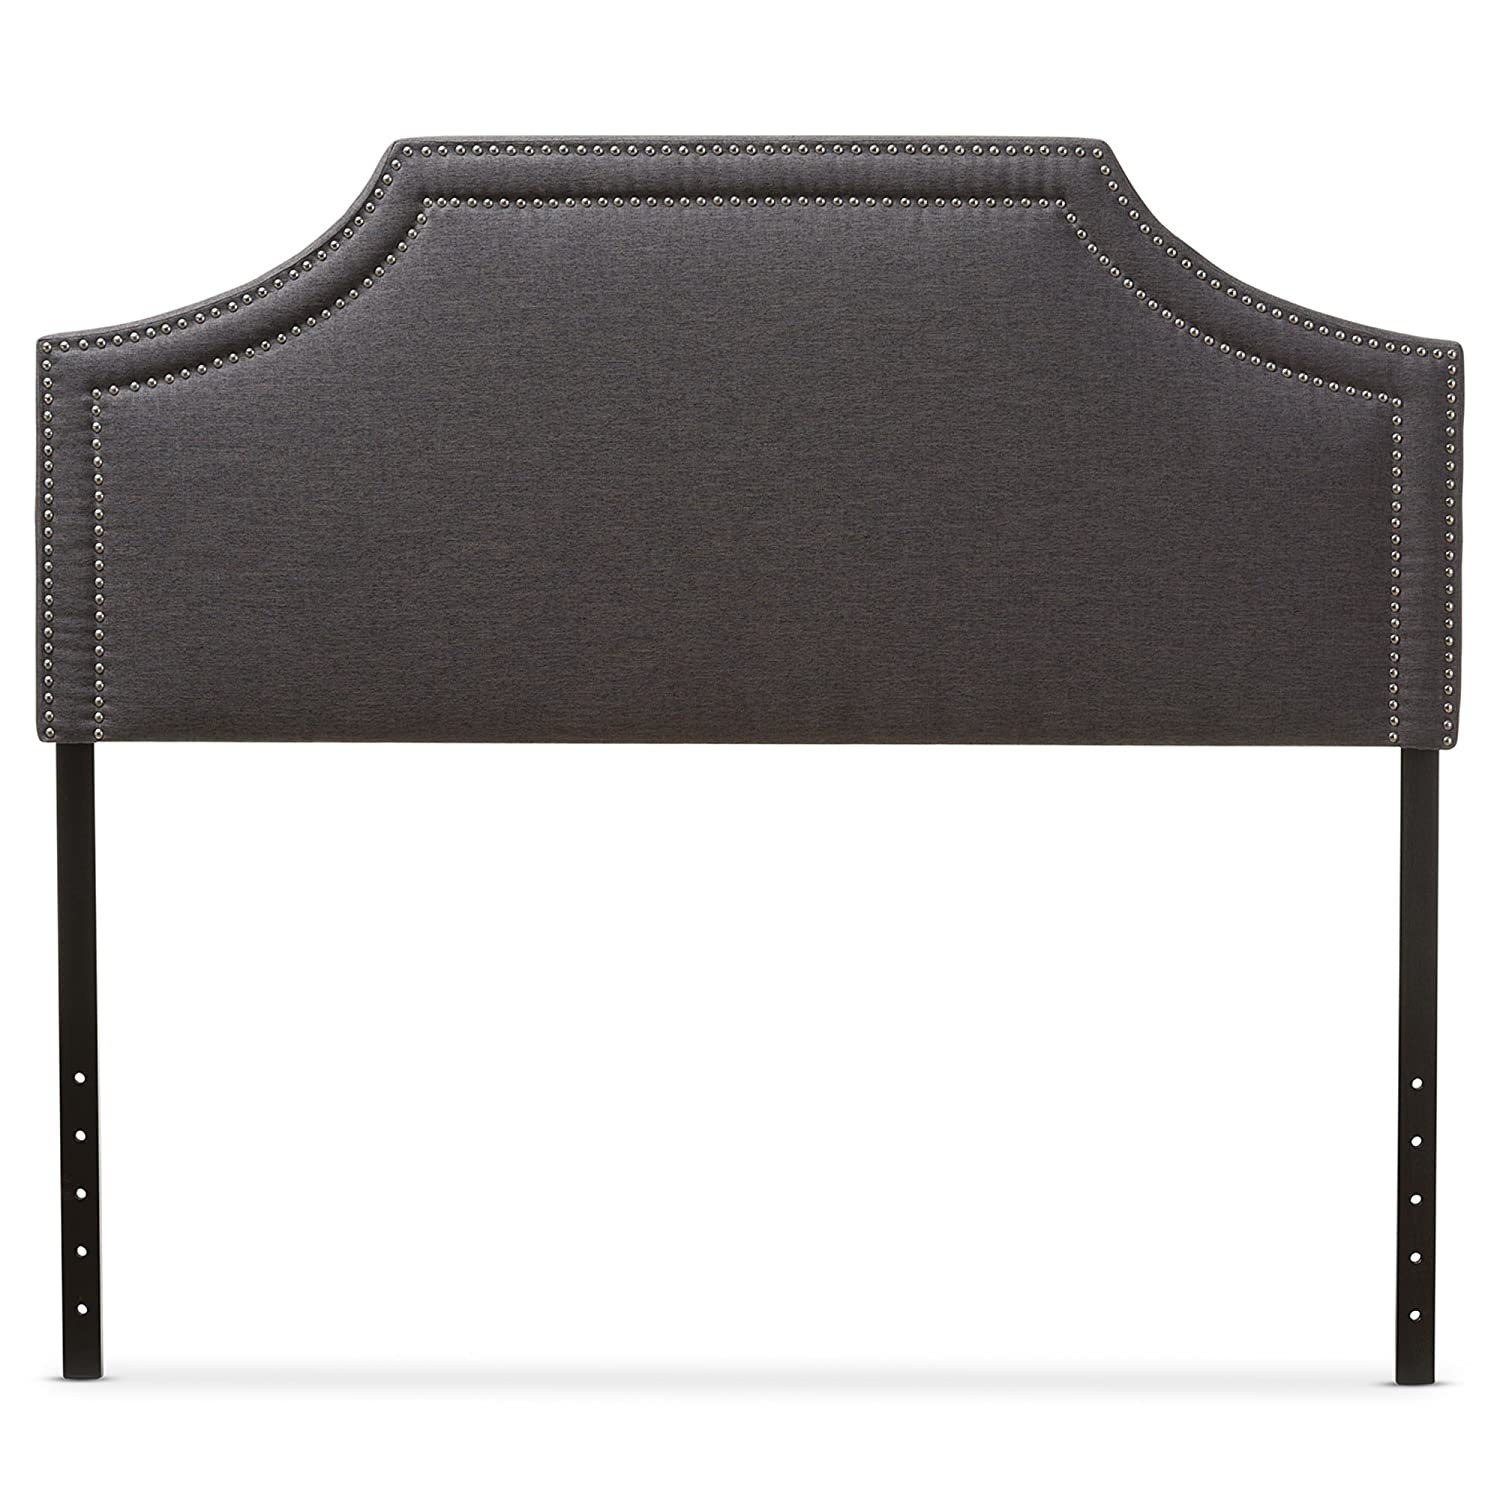 Baxton Studio Guilford Modern & Contemporary Fabric Upholstered Headboard, Full, Dark Grey Wholesale Interiors 424-6866-AMZ